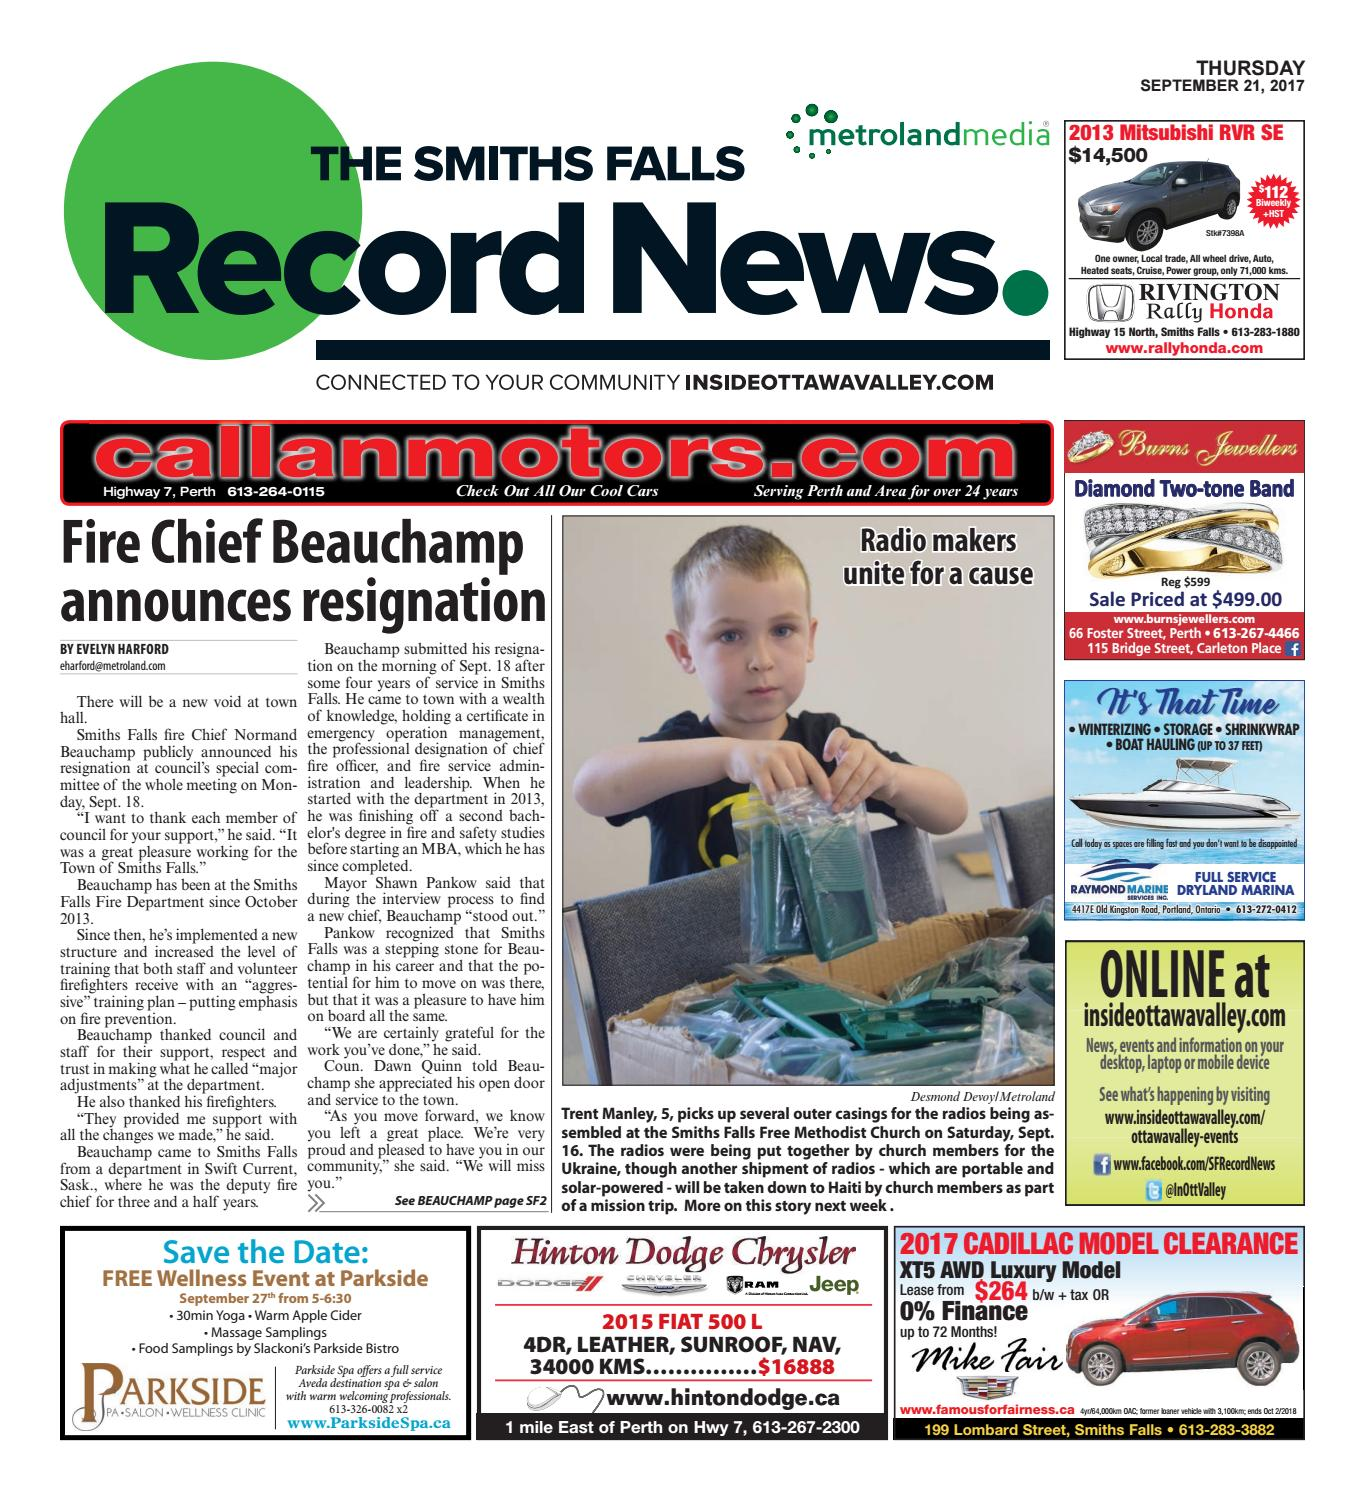 ff47d472c461 Smithsfalls092117 by Metroland East - Smiths Falls Record News - issuu